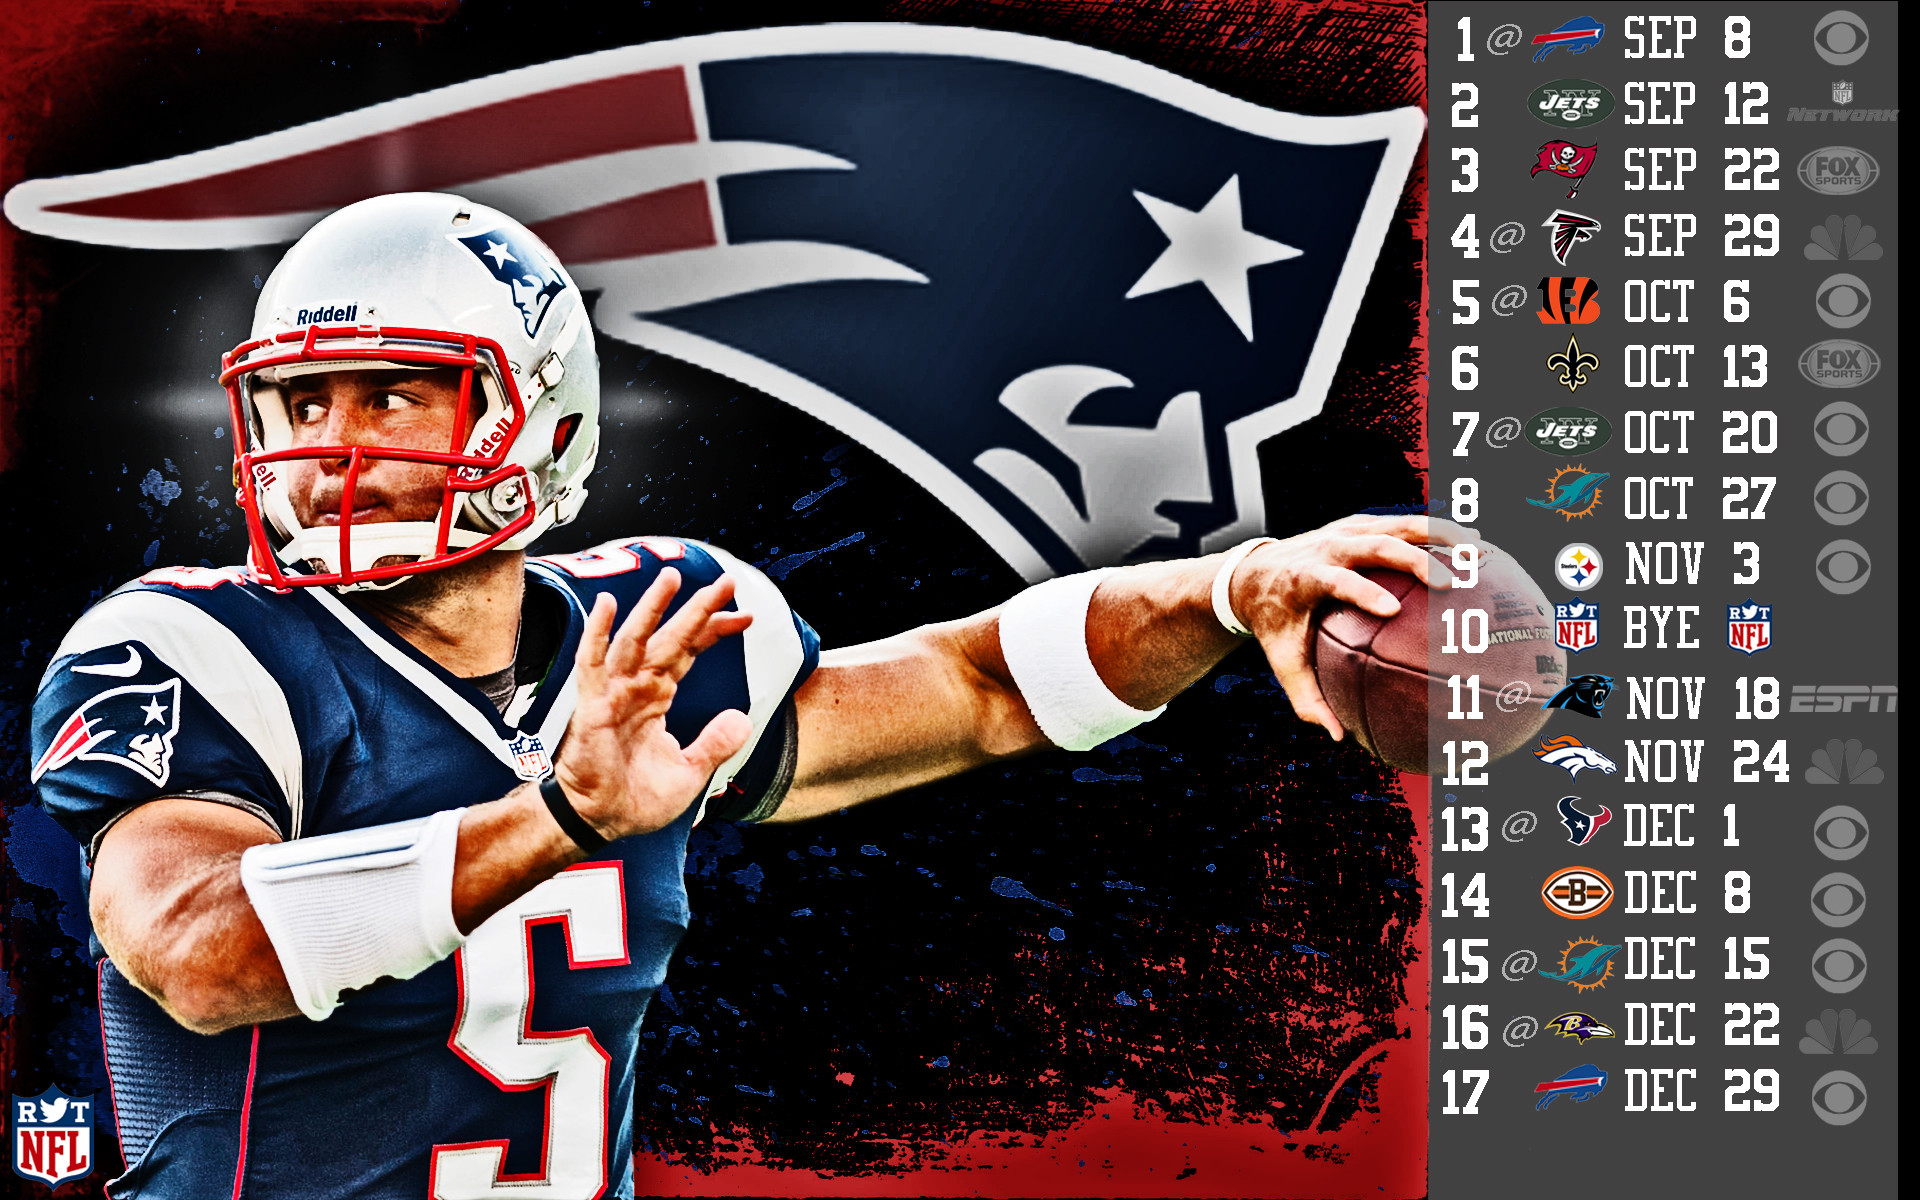 1920x1200 Patriots Wallpaper 2014 Related Keywords & Suggestions - Patriots .